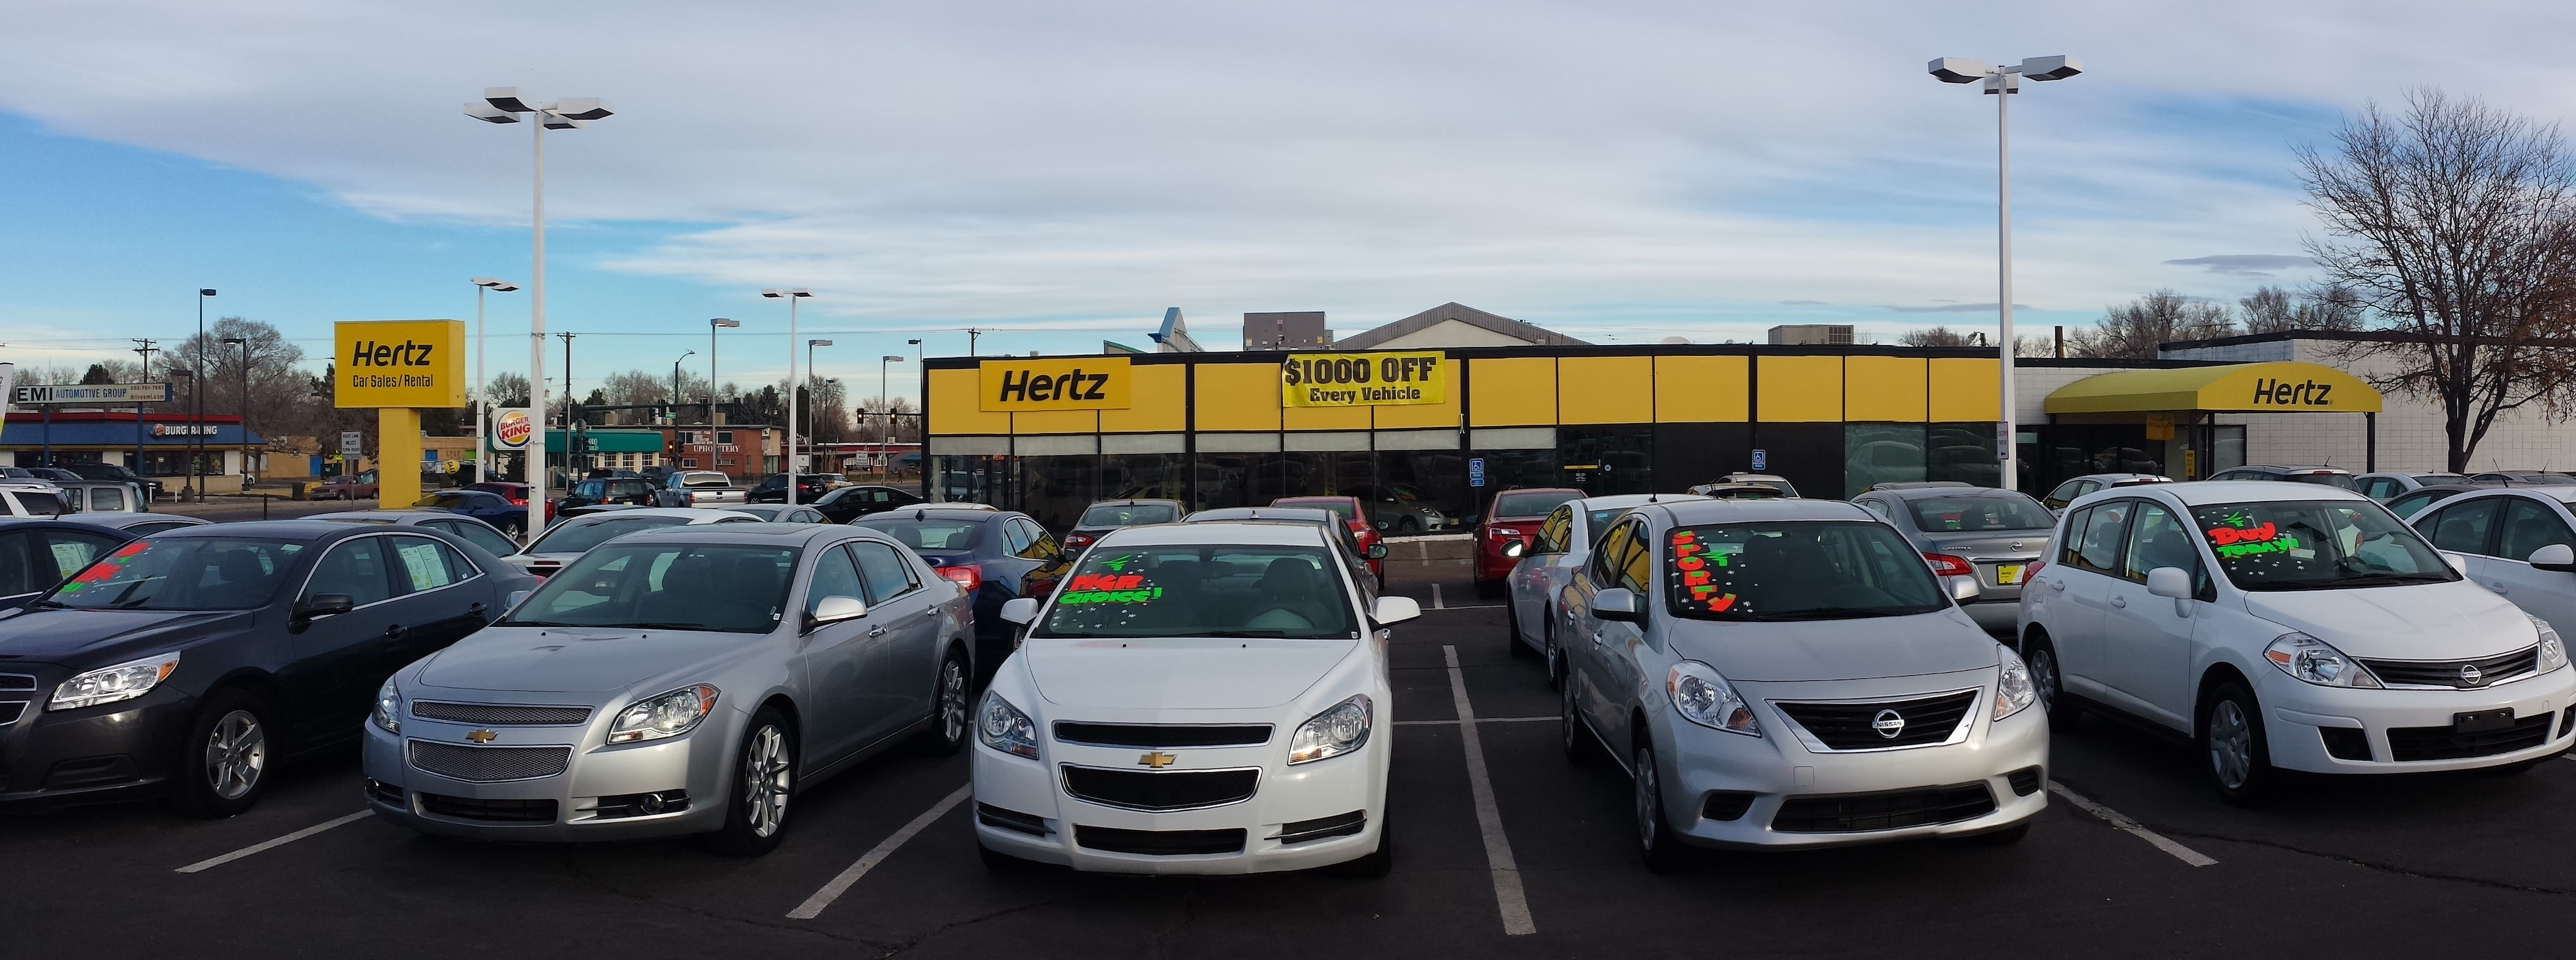 Hertz Car Dealership Near Me